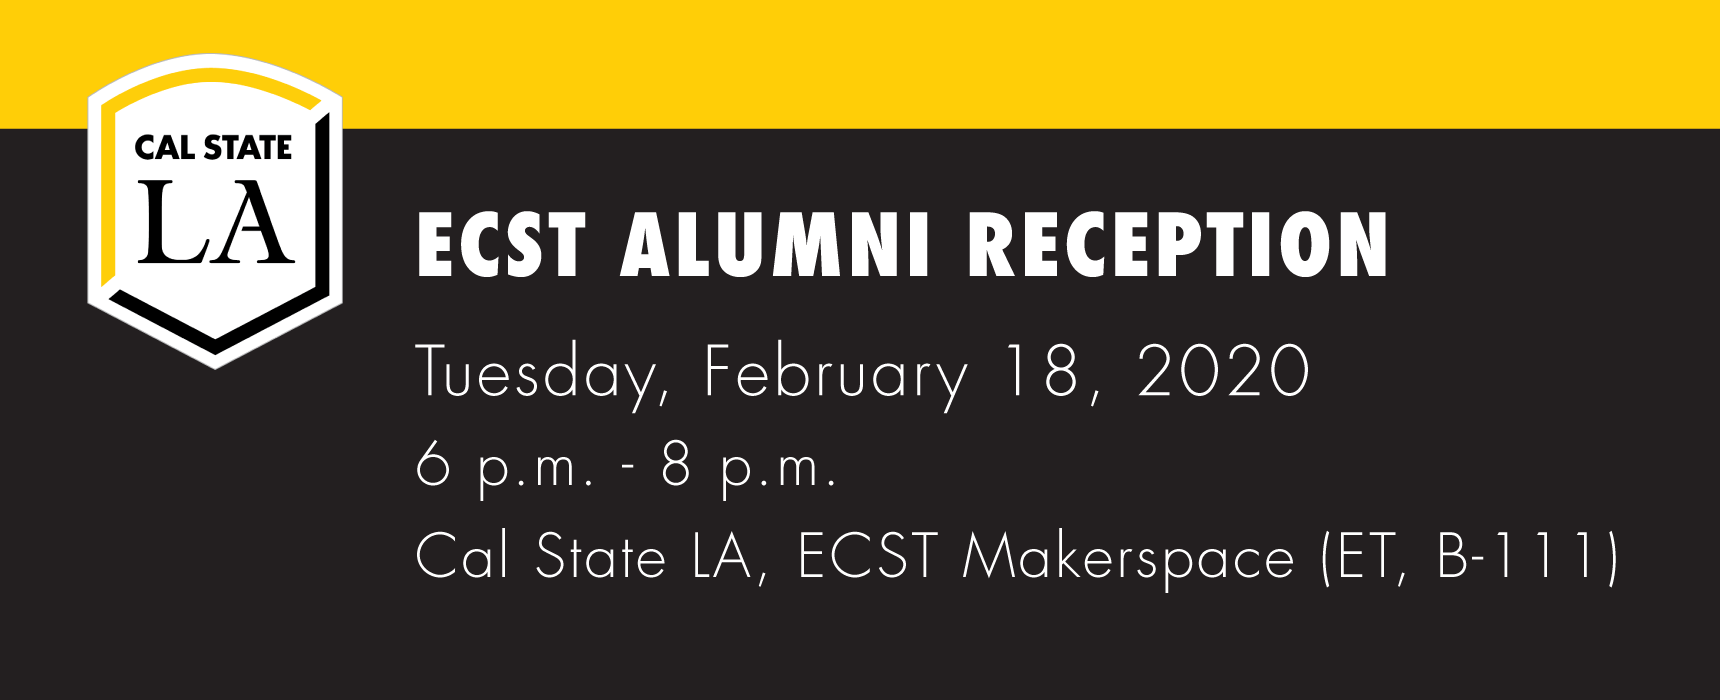 ECST Alumni Reception 2020. Tuesday, Feb 18, 6 to 8pm at Cal State LA ECST Makerspace.